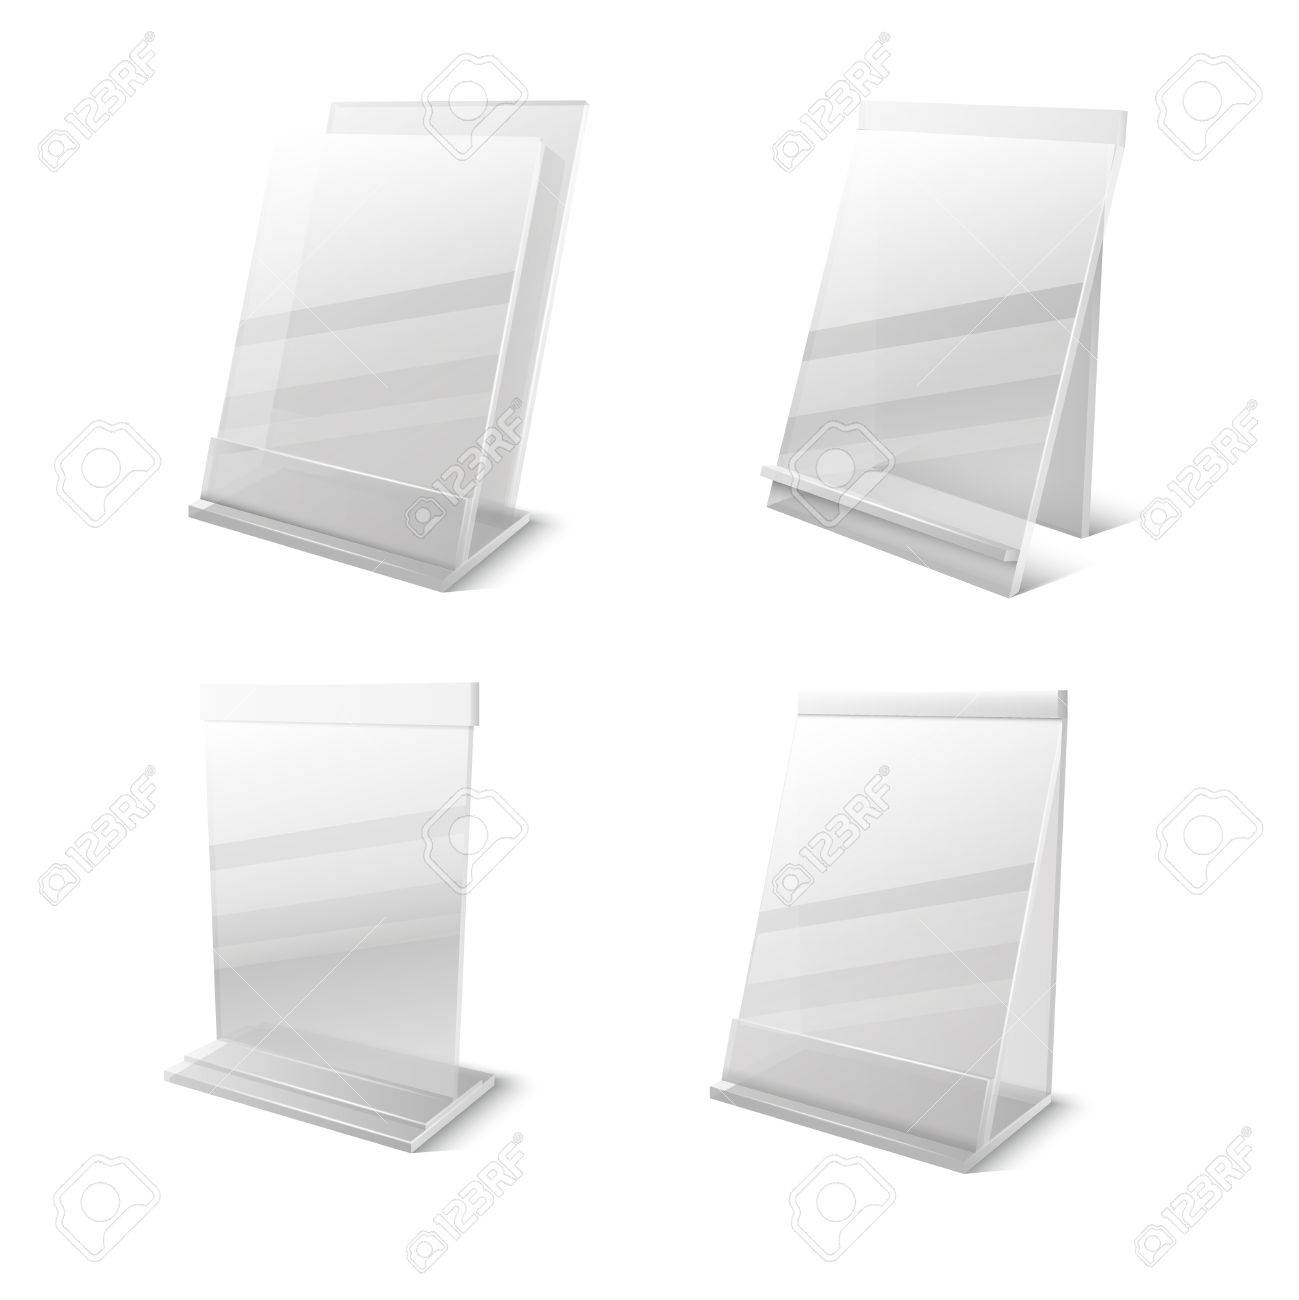 Business Information Transparent Plexiglass Empty Holders Vector ...